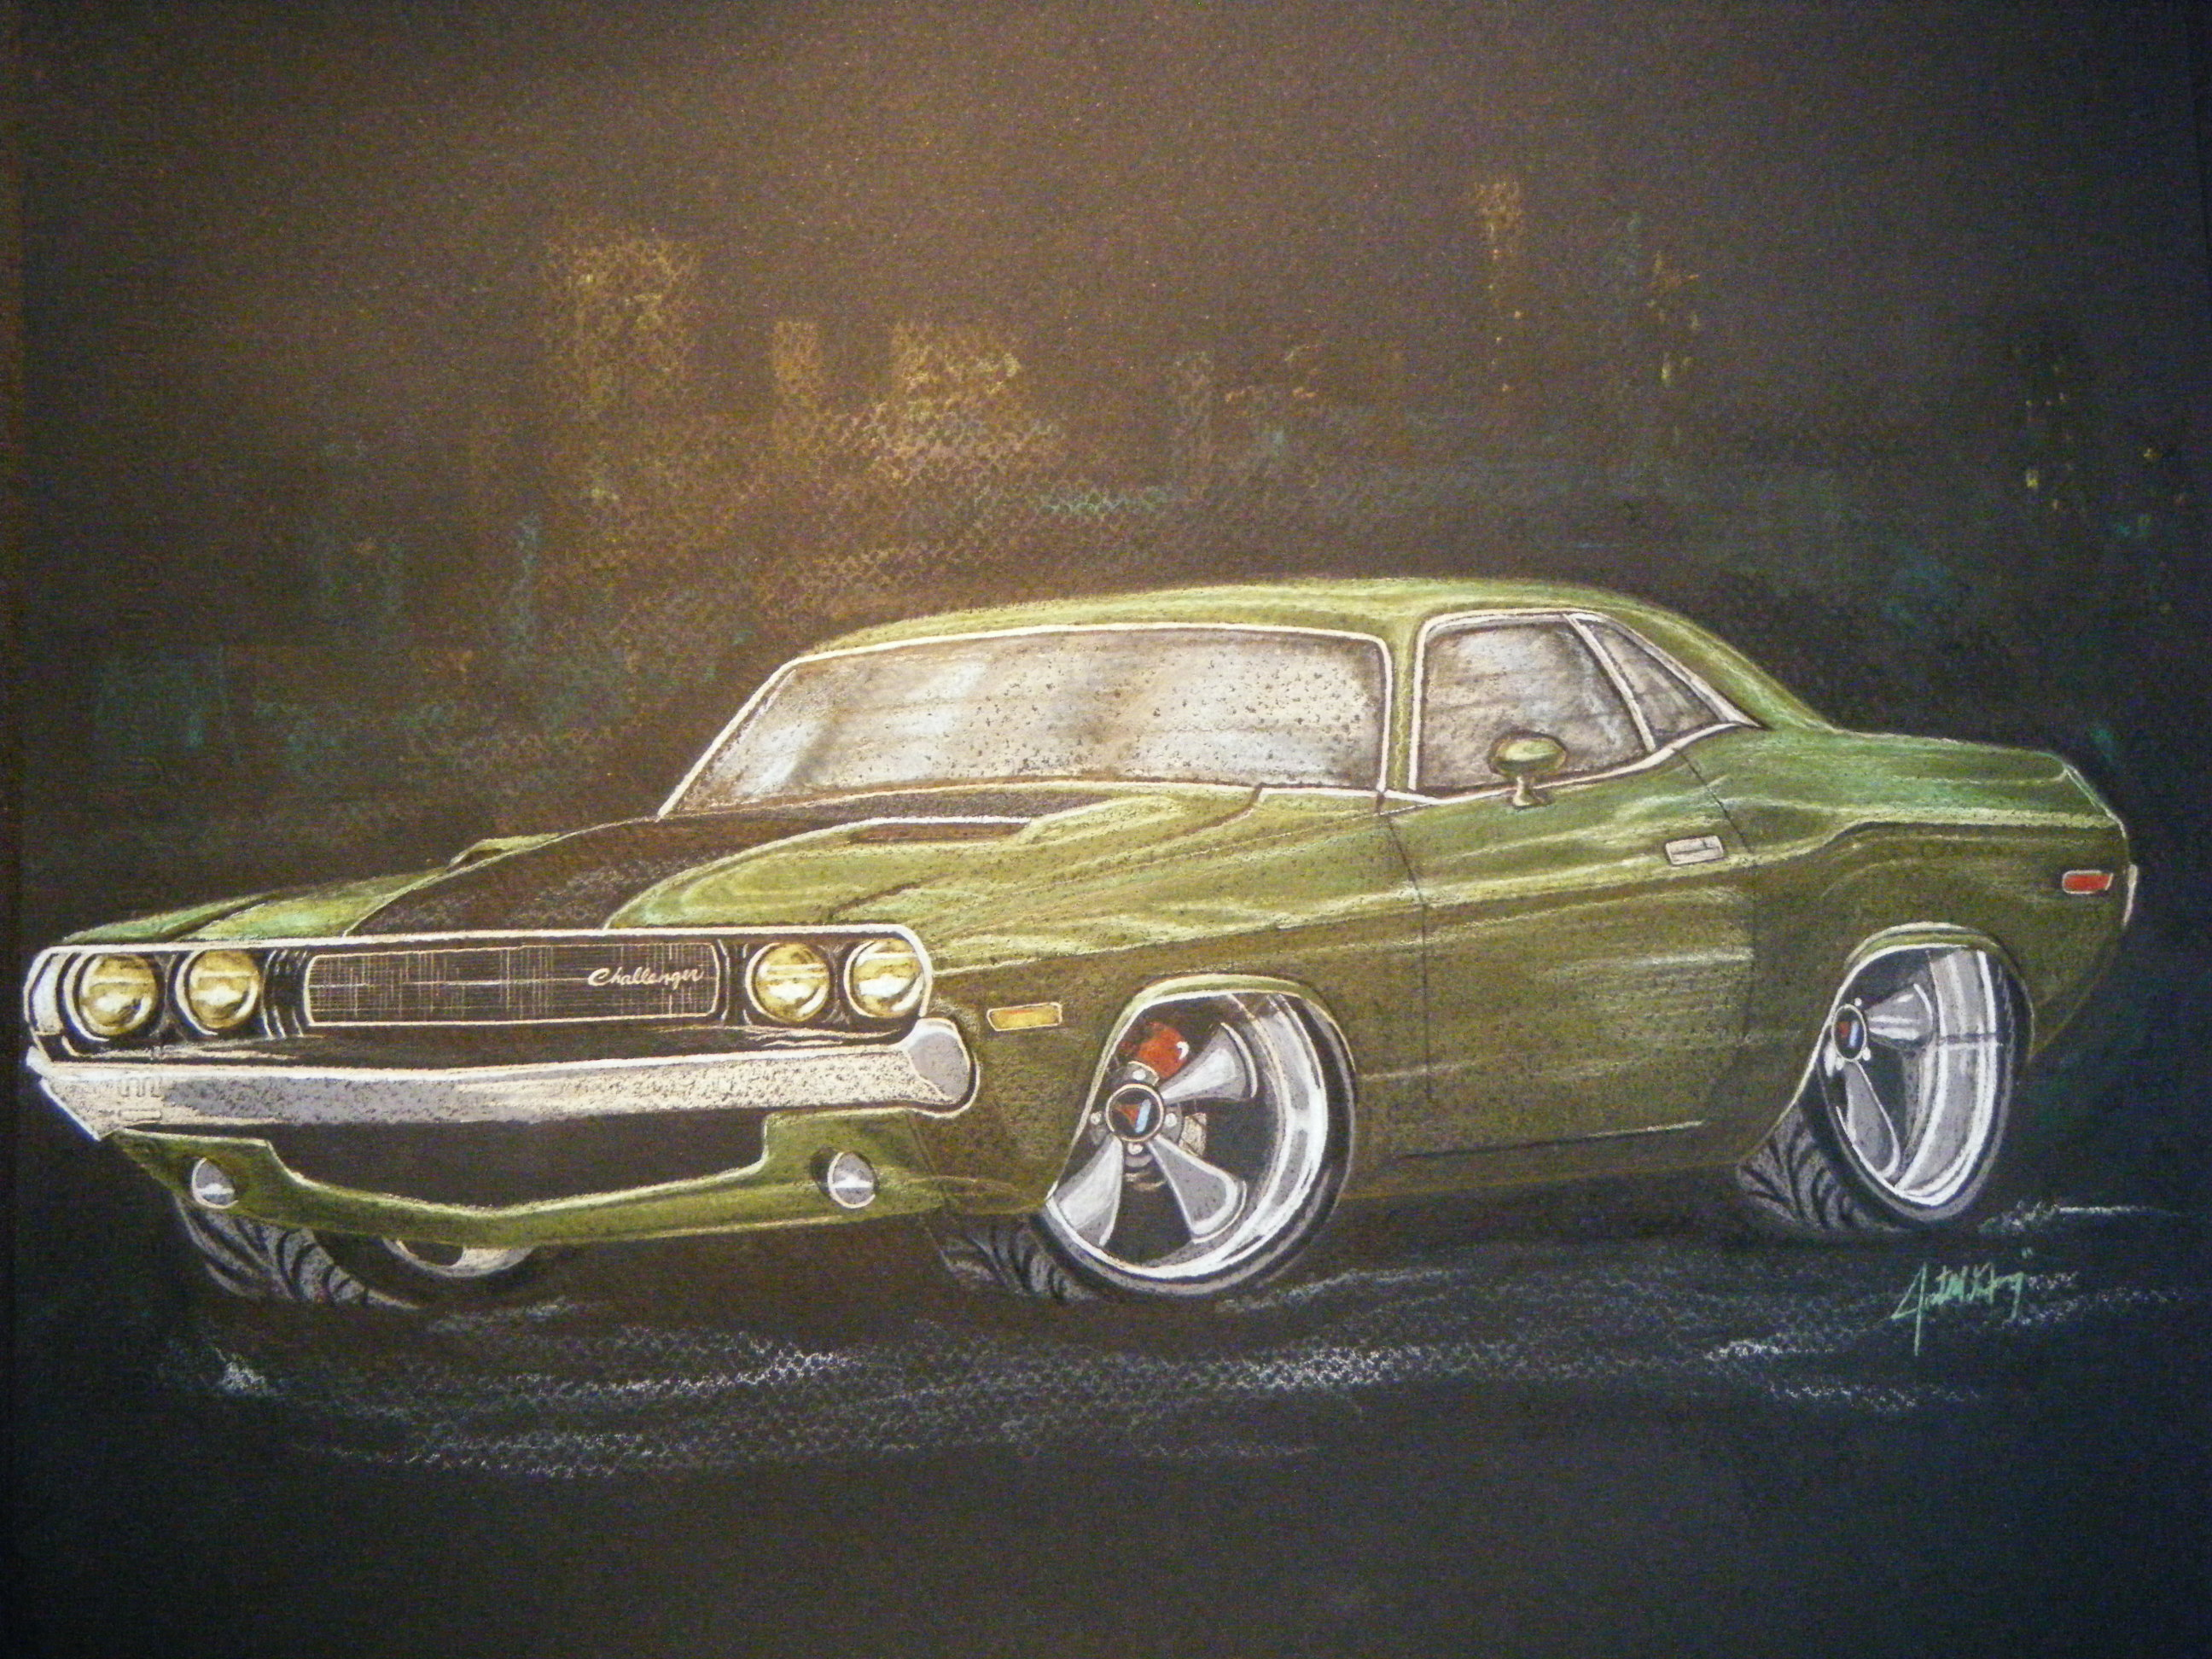 Drawn vehicle challenger Colored Challenger my pencil pencil